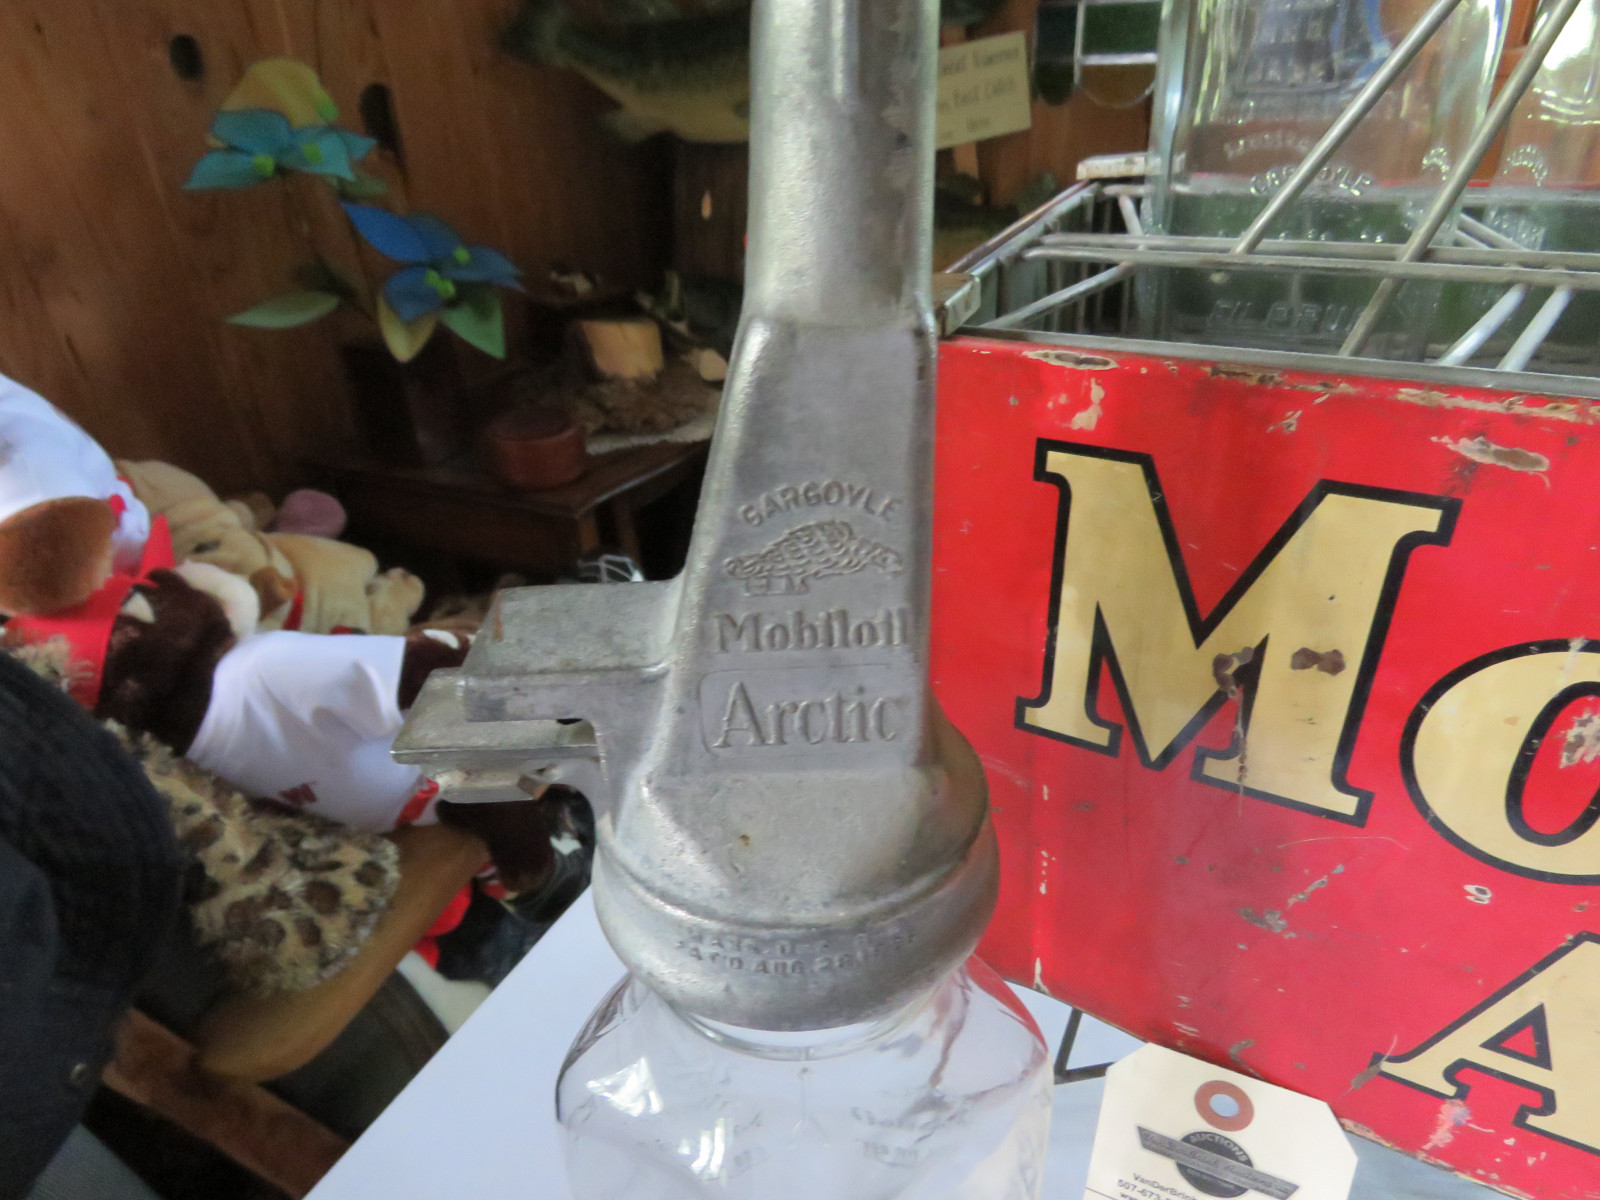 Rare Glass Mobil Oil Bottles in Rack with MobilOil Advertising - Image 5